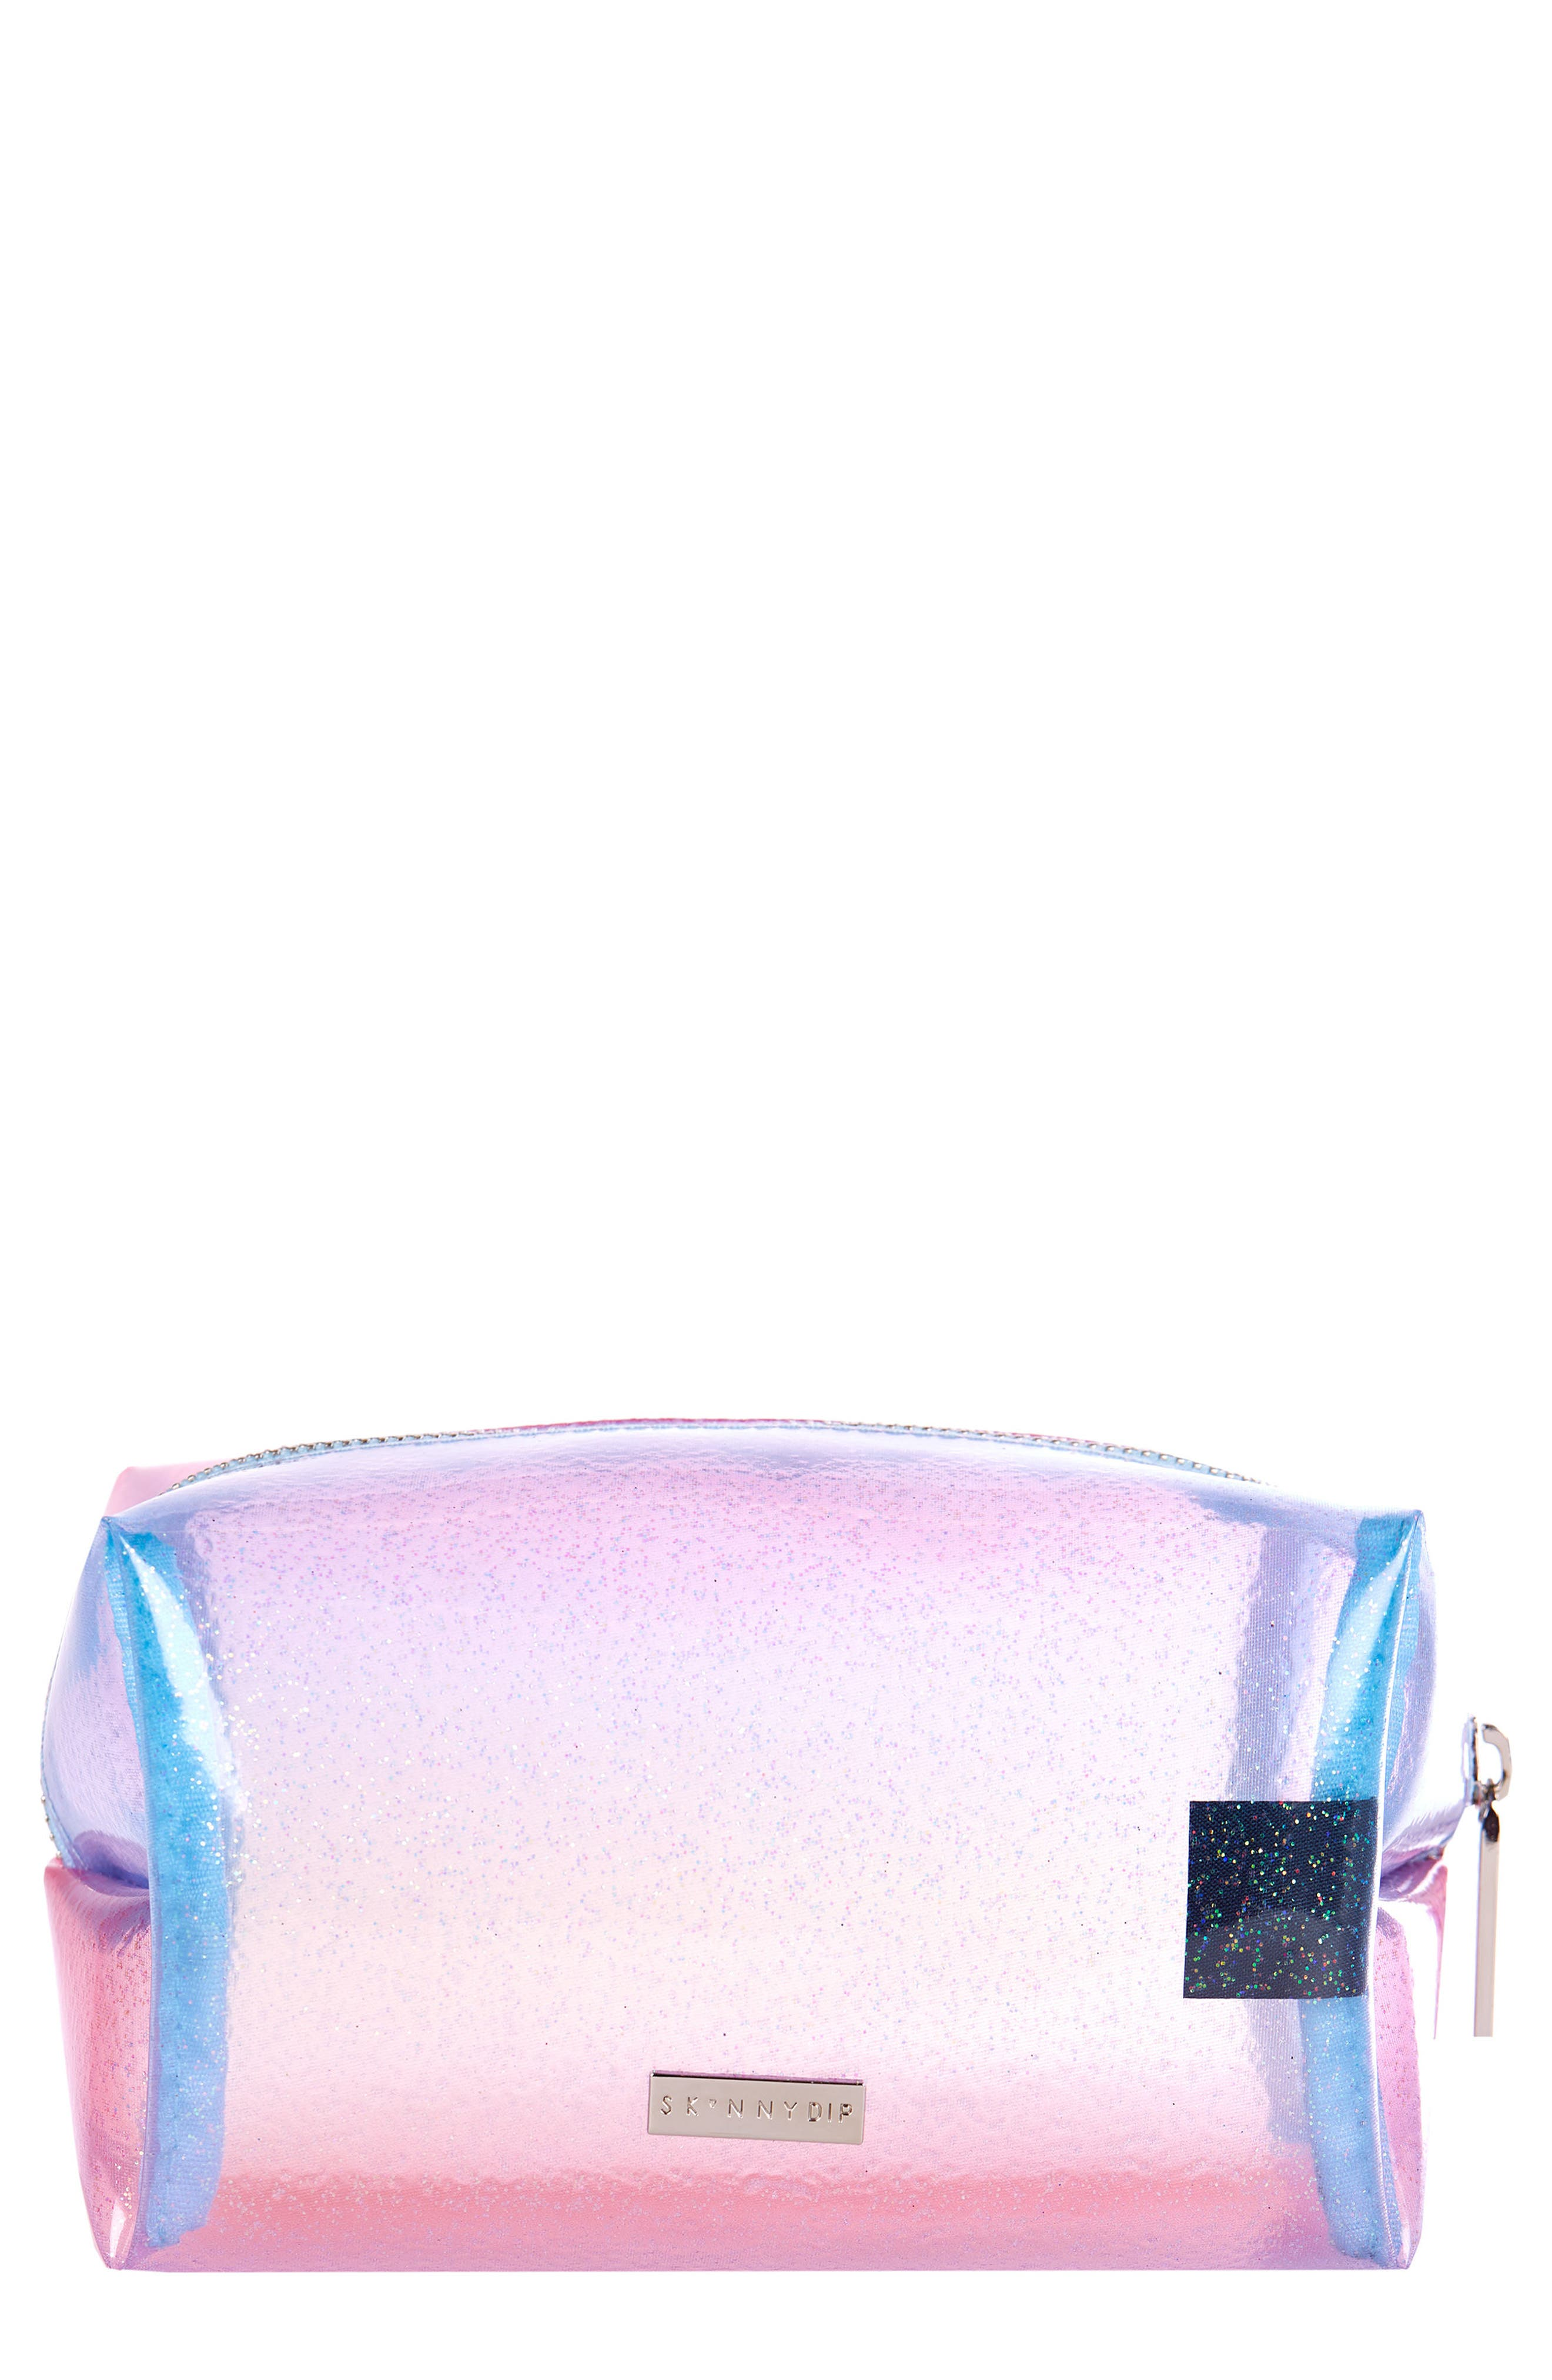 Skinny Dip Sunset Cosmetics Case,                             Main thumbnail 1, color,                             NO COLOR